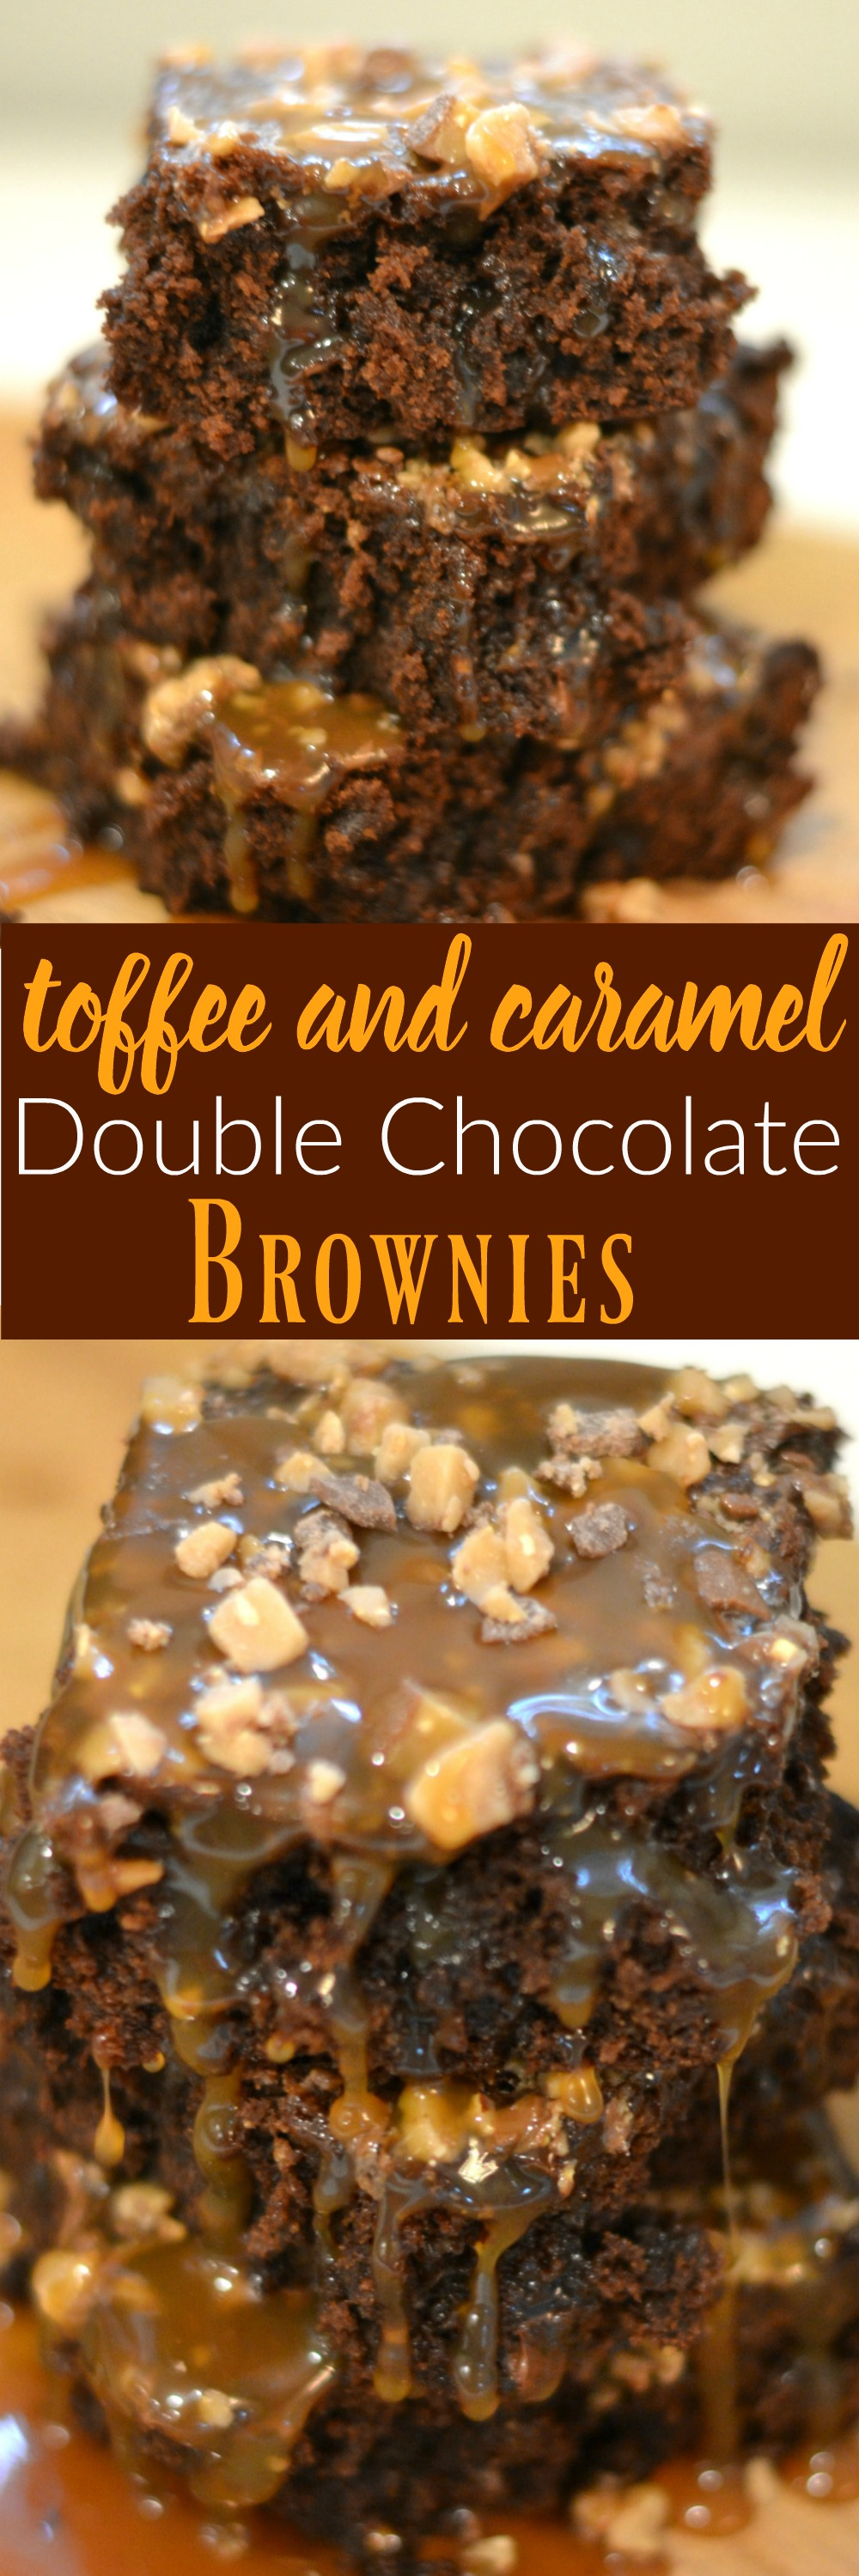 Toffee and Caramel Double Chocolate Brownies